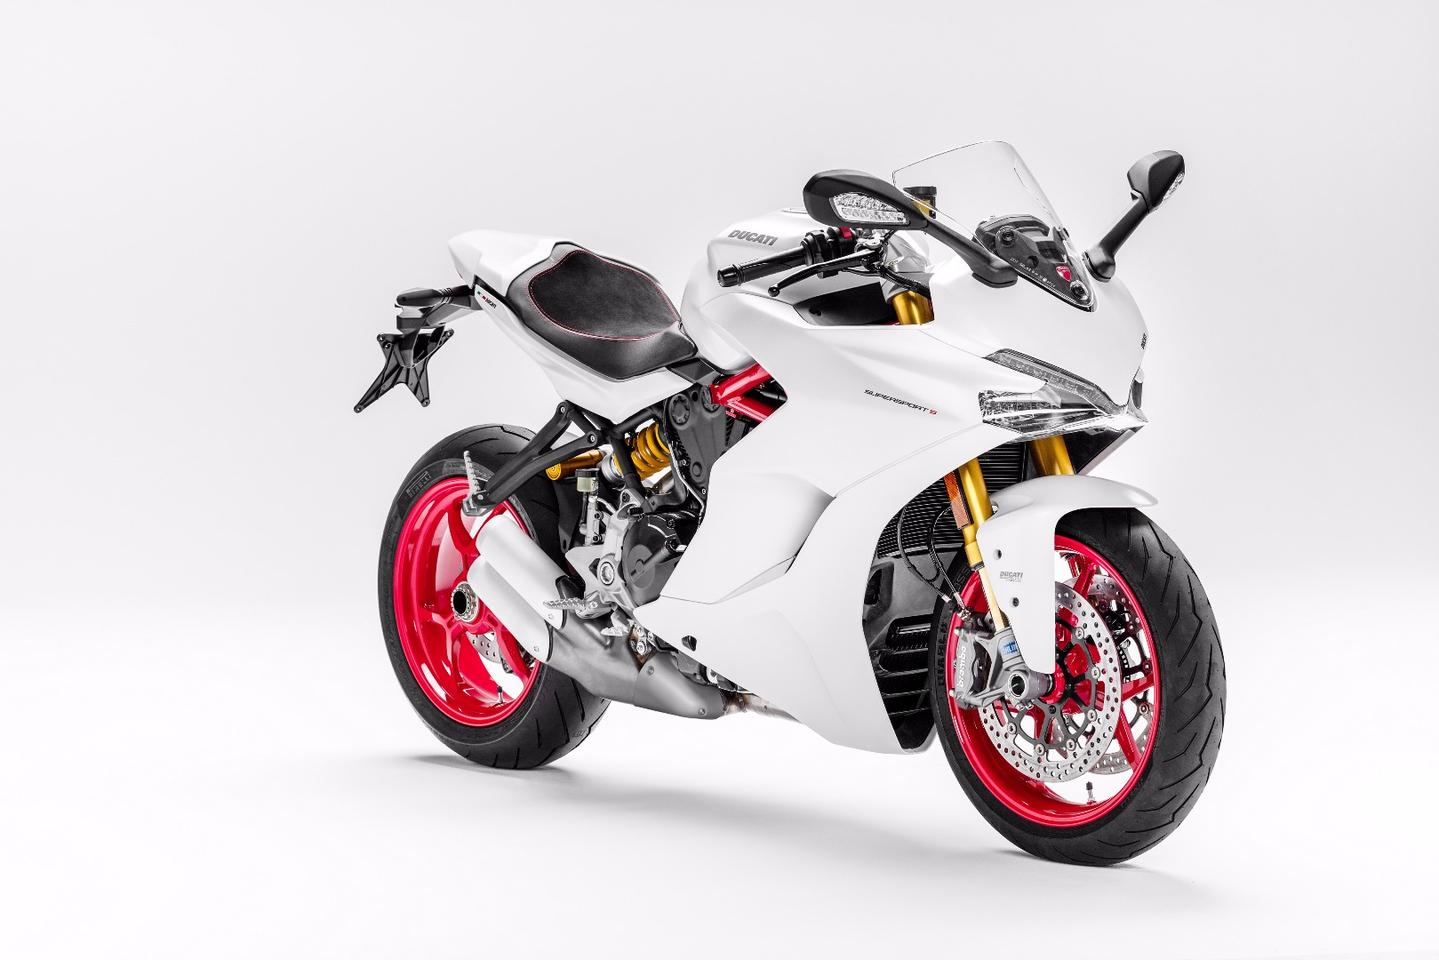 The 2017 Ducati SuperSport S will be the only version available inStar White Silk color